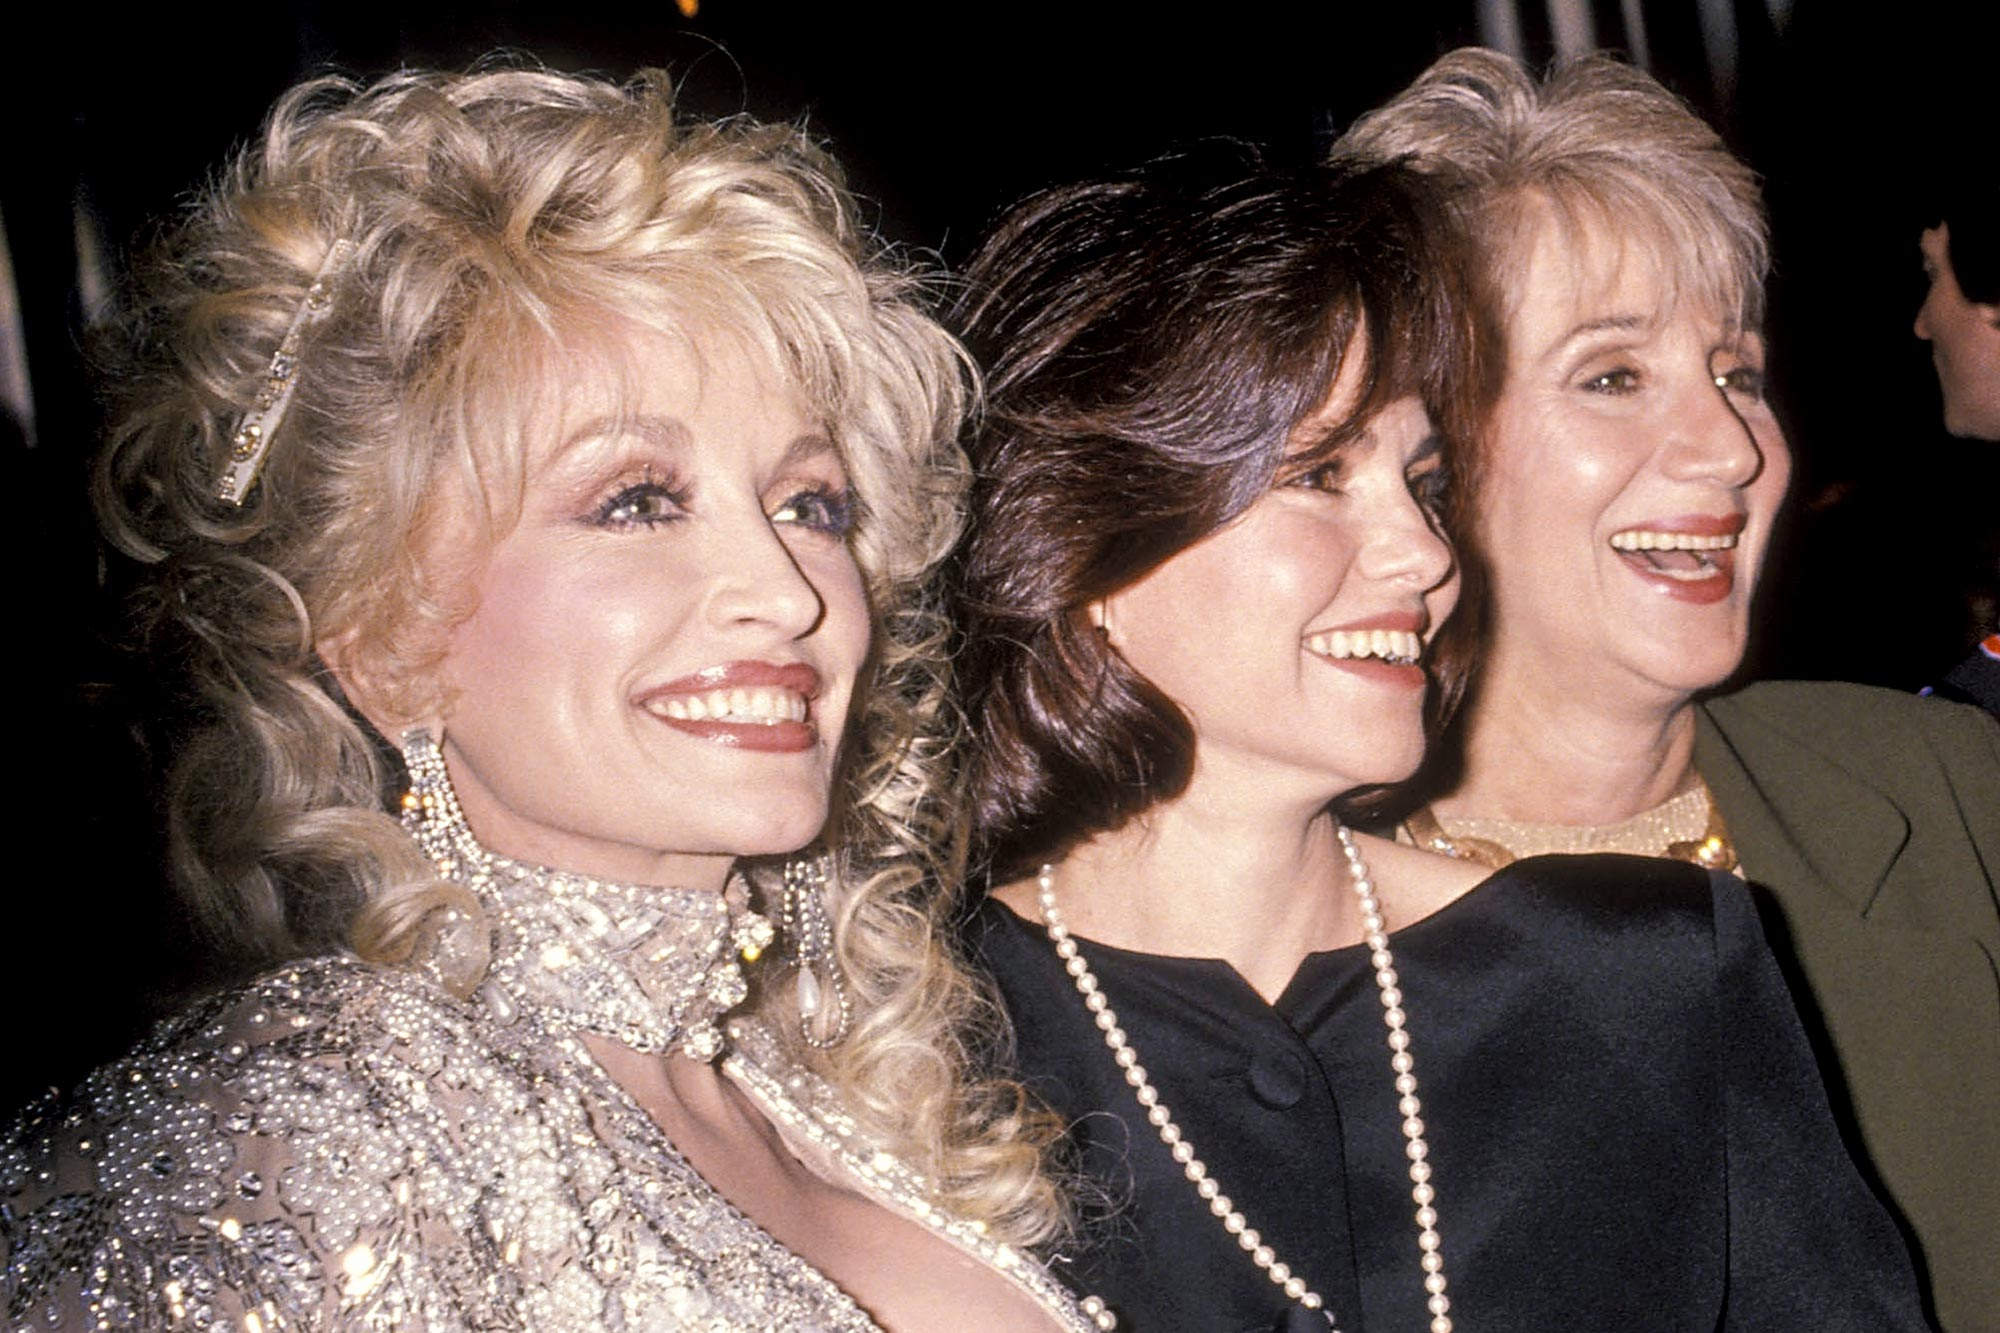 Dolly Parton, actress Sally Field, actress Olympia Dukakis